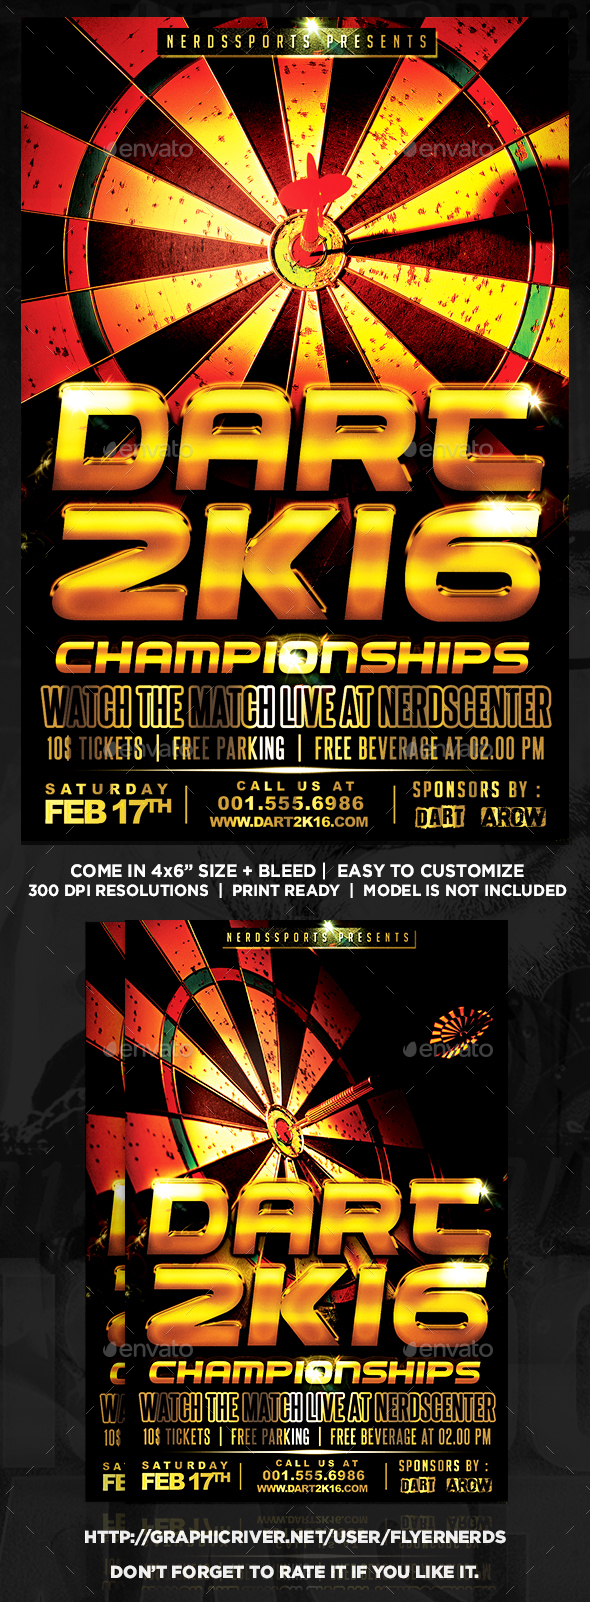 Dart 2K16 Championships Sports Flyer - Sports Events